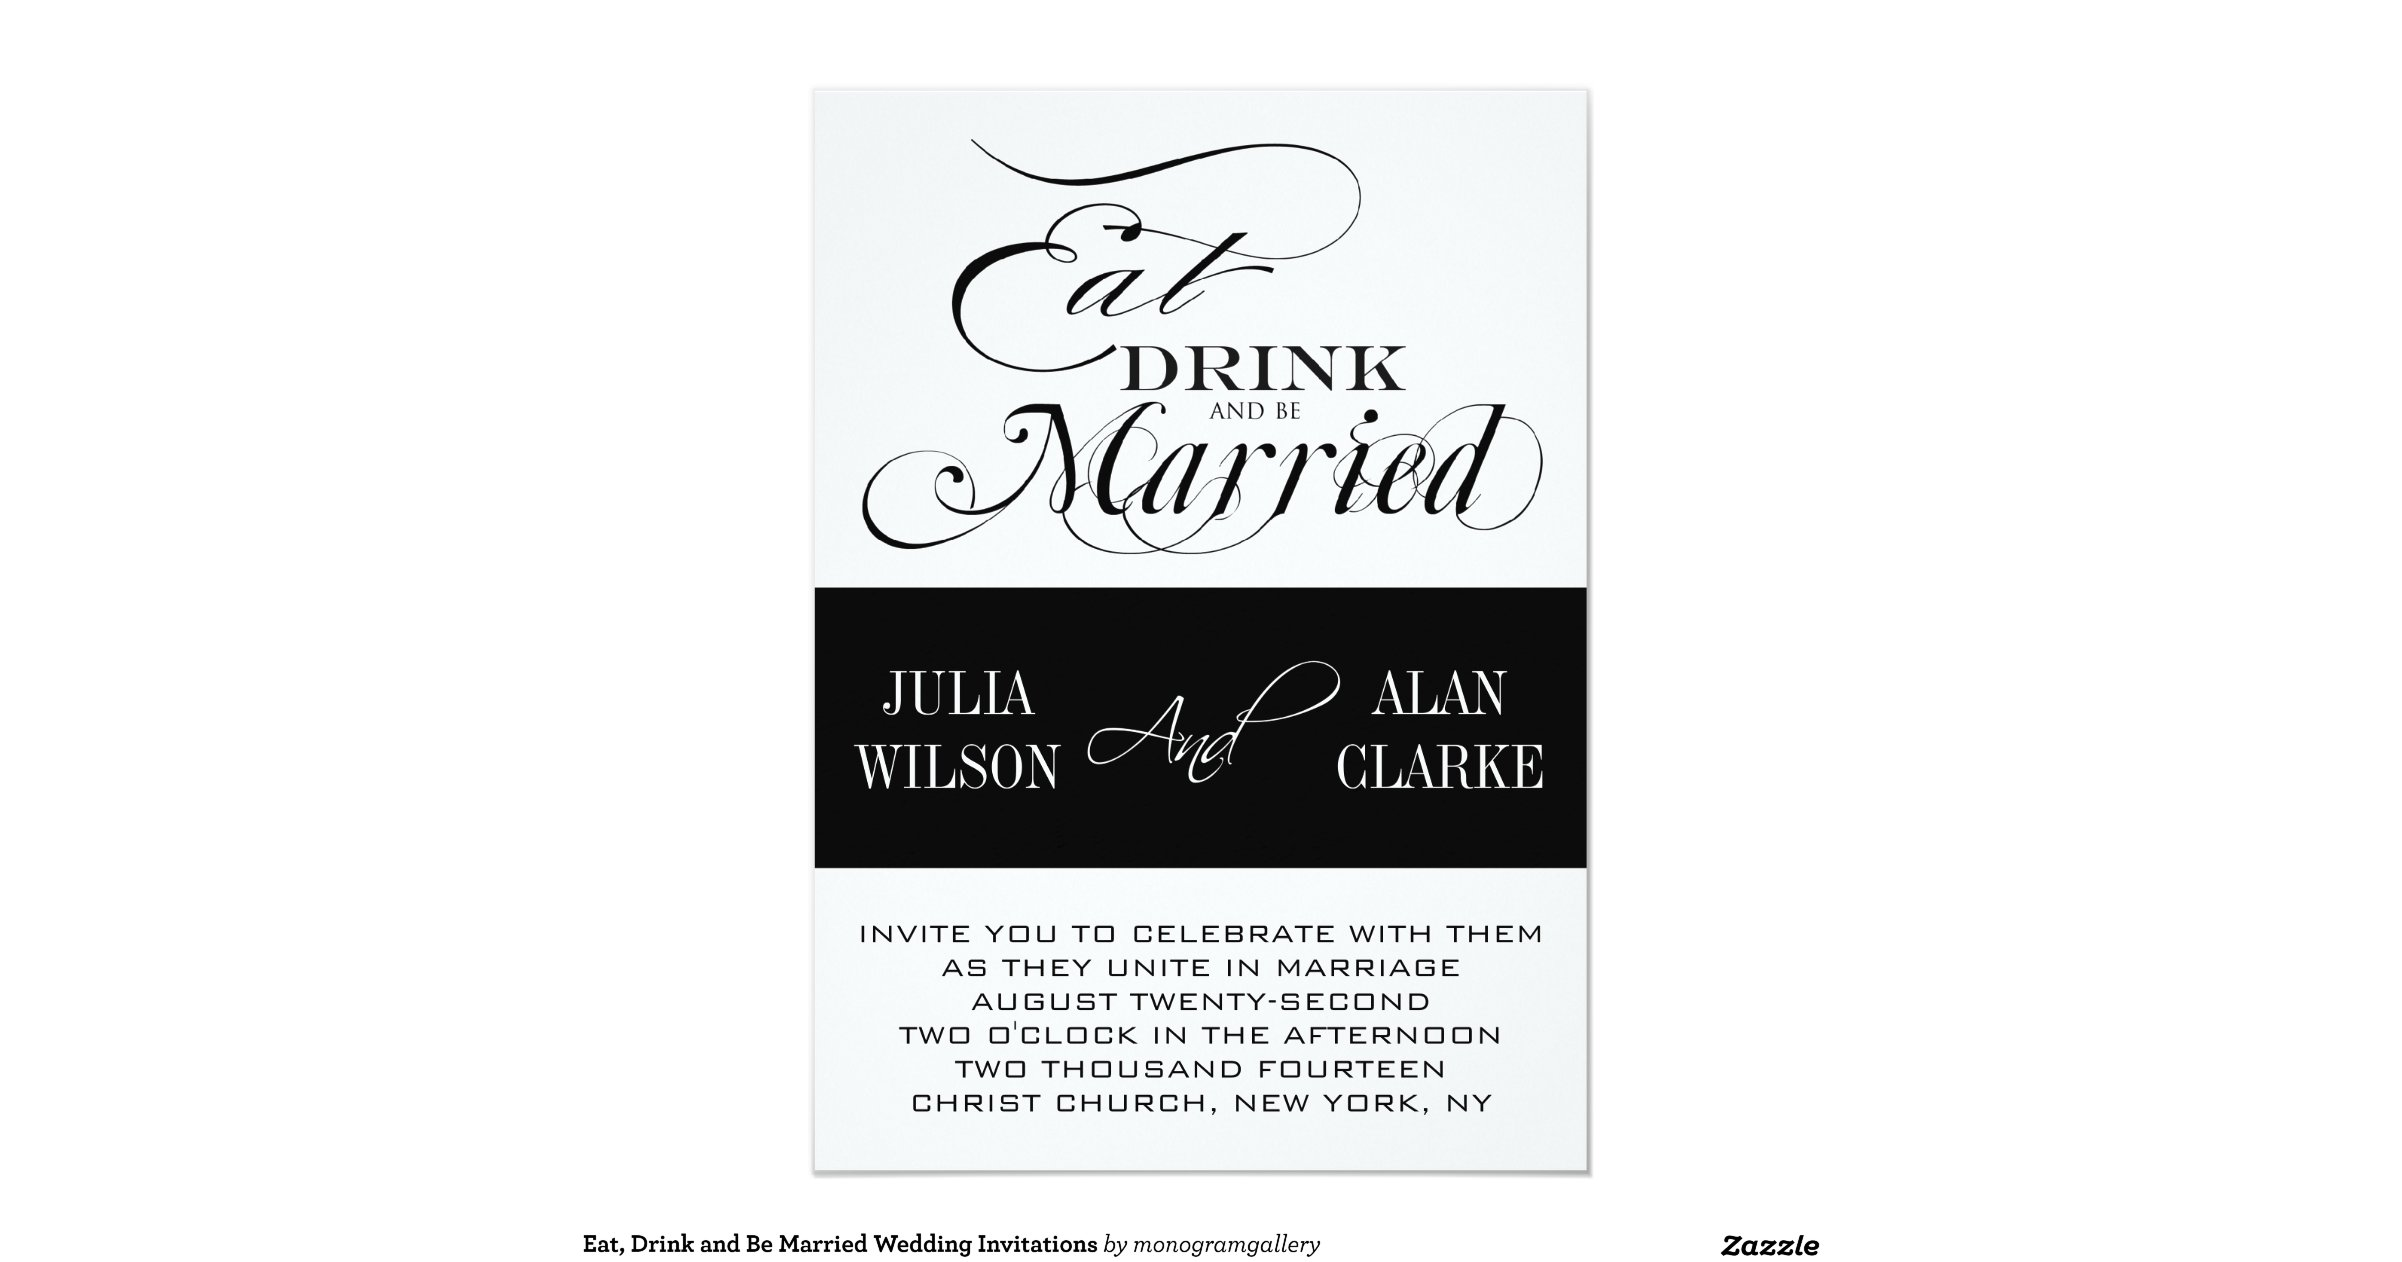 Wedding Invitations Eat Drink And Be Married: Eat_drink_and_be_married_wedding_invitations